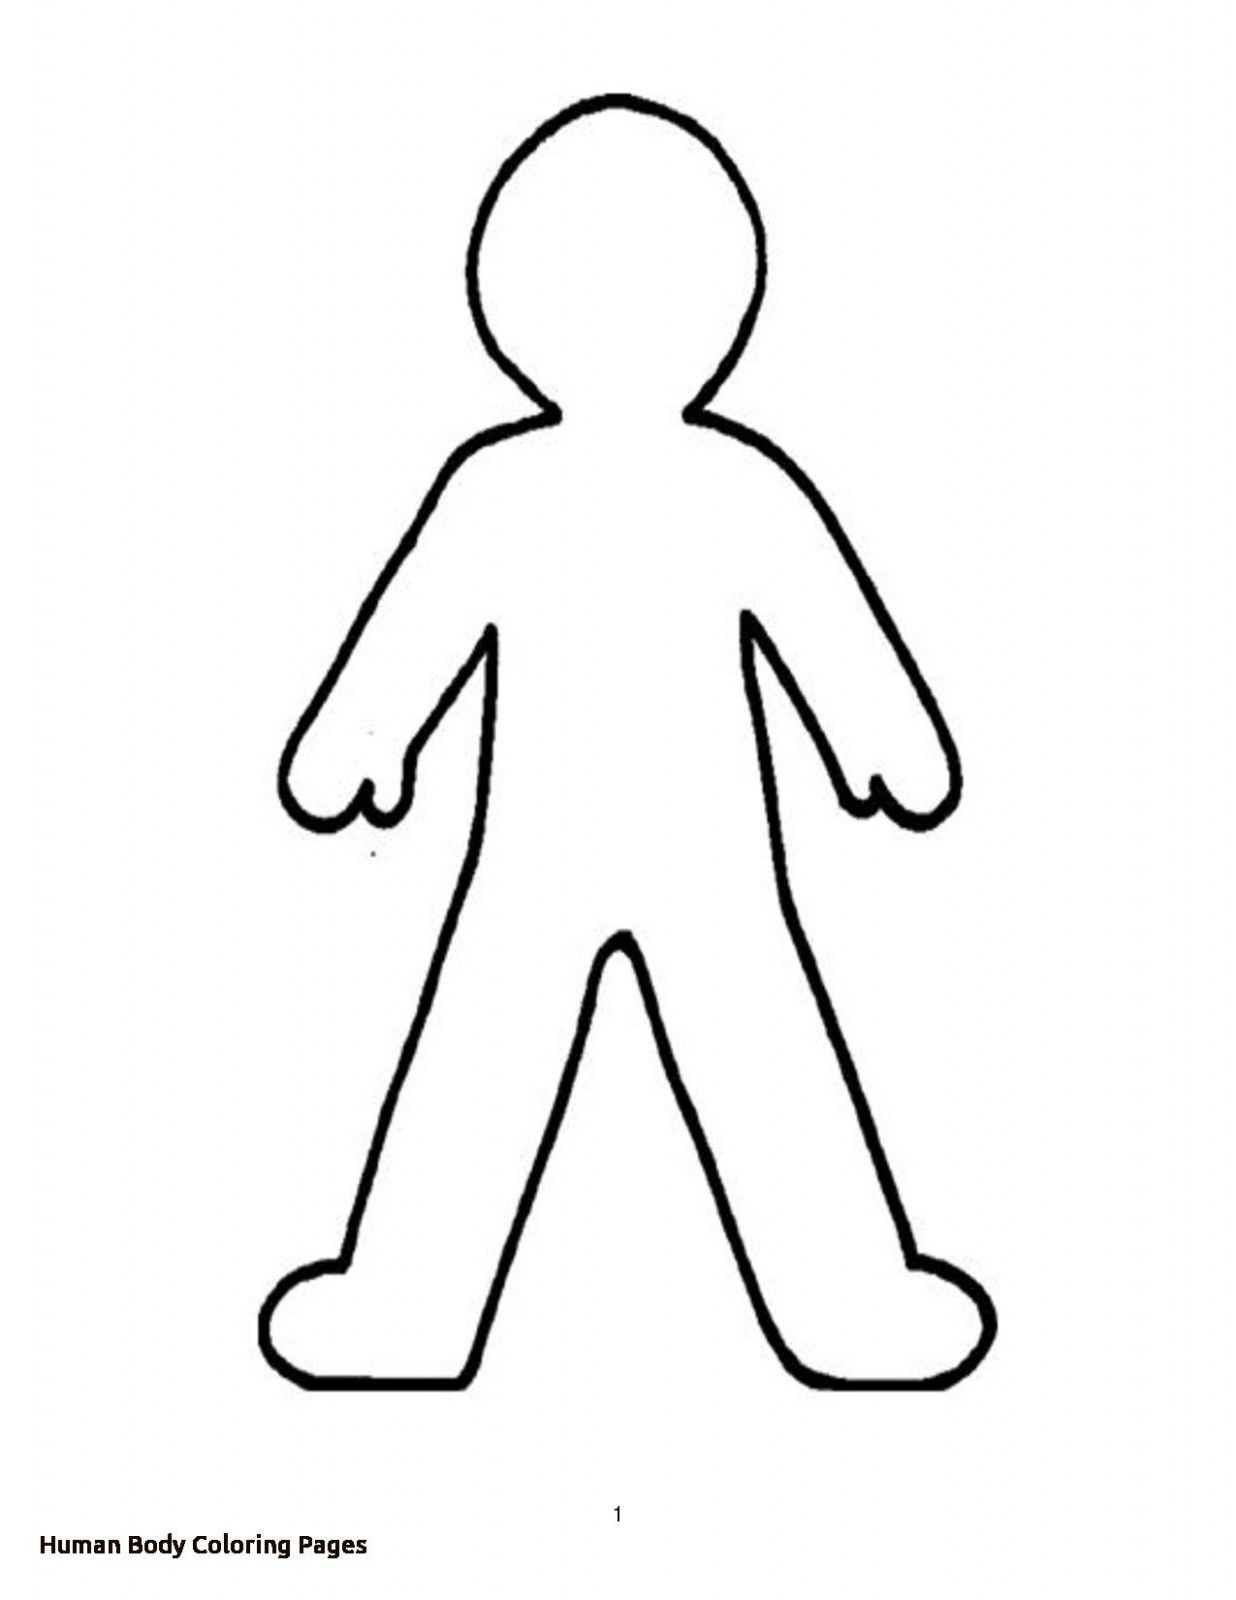 Free Body Coloring Pages For Kids Image In 2021 Person Outline Body Outline Human Body Worksheets